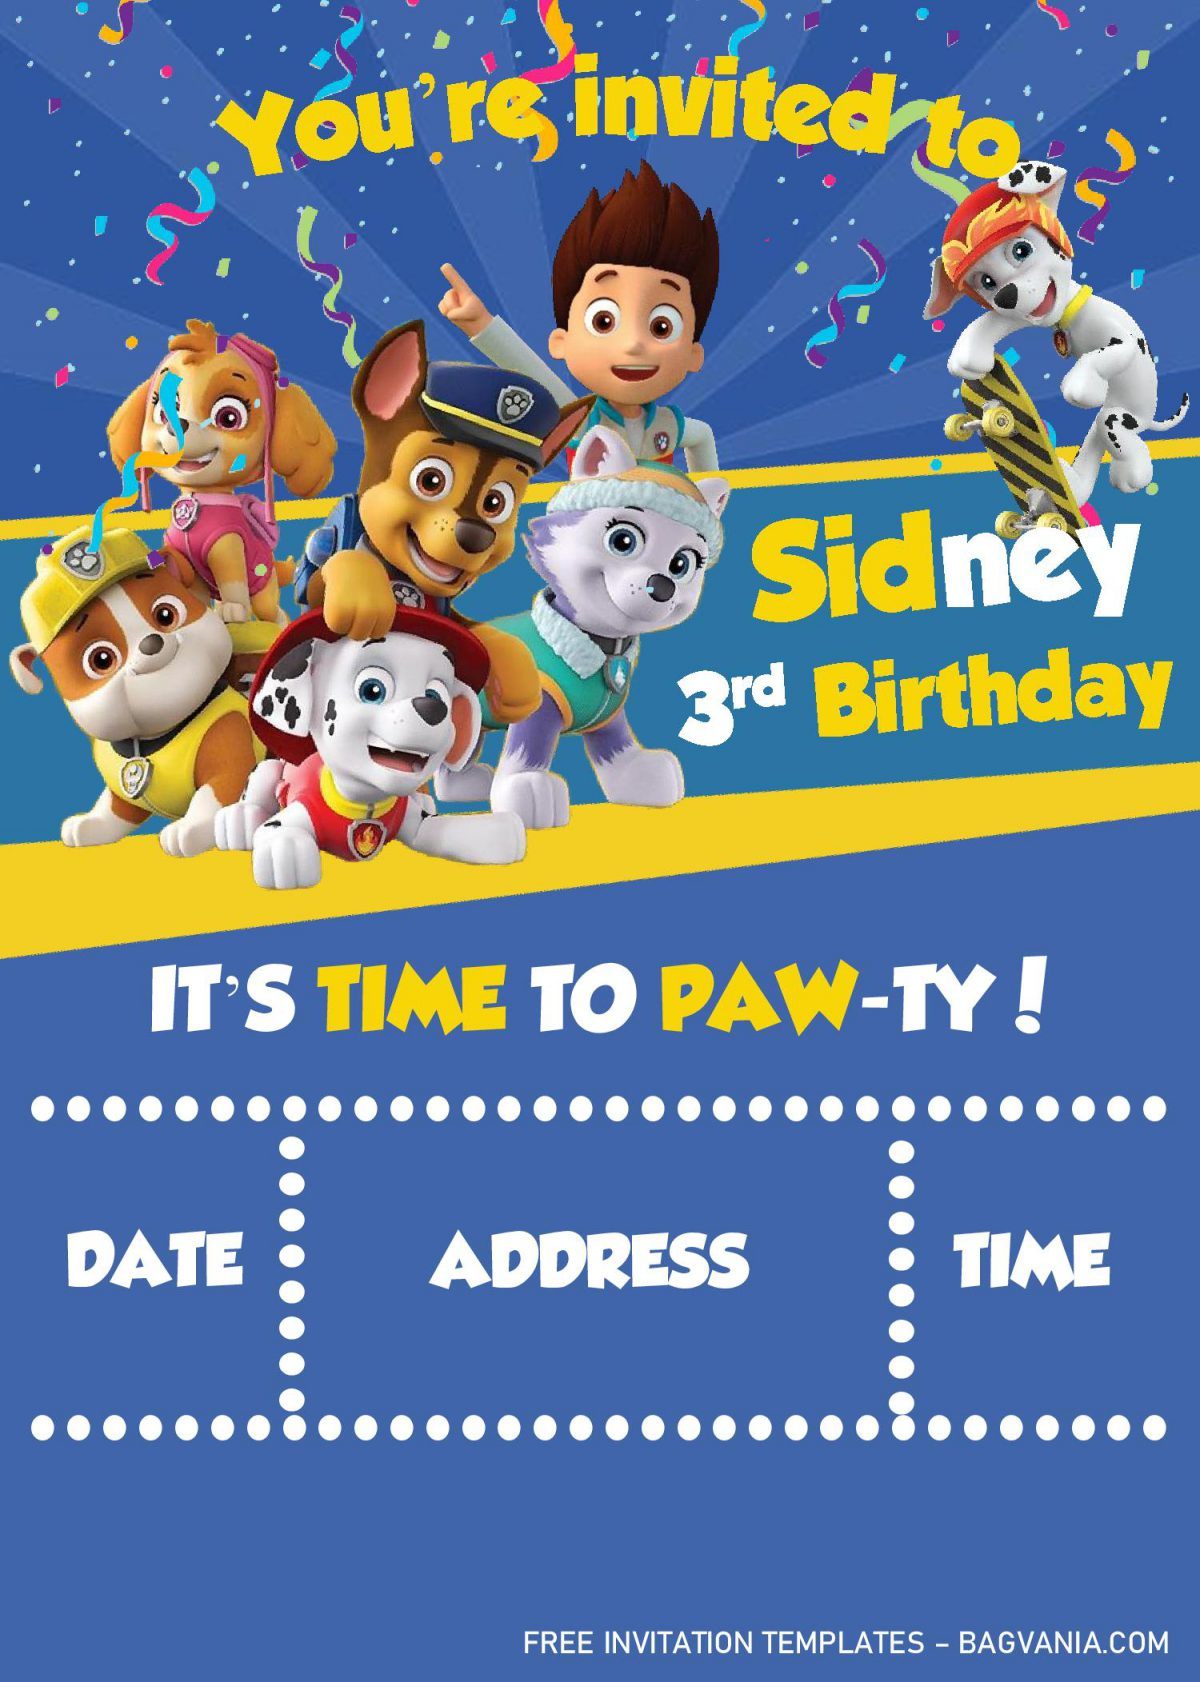 Paw Patrol Invitation Templates - Editable With MS Word and has all the cute characters